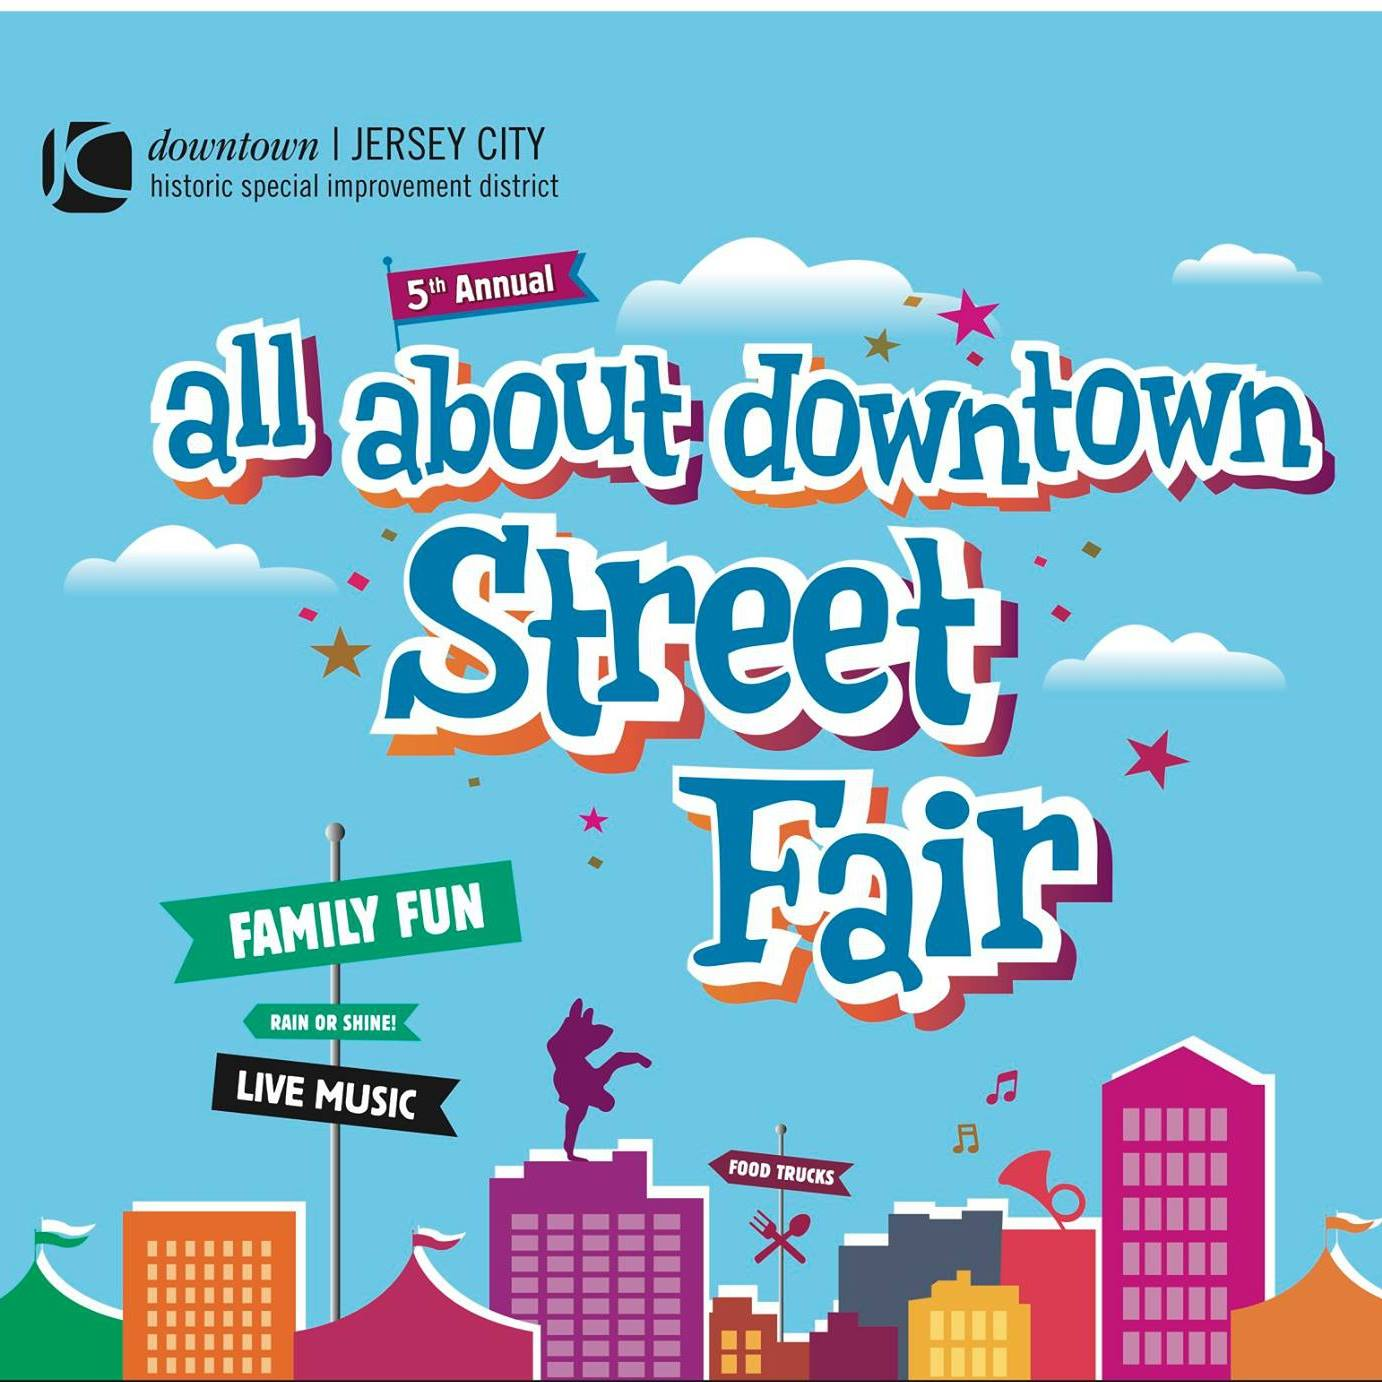 All About Downtown Street Fair 9/19